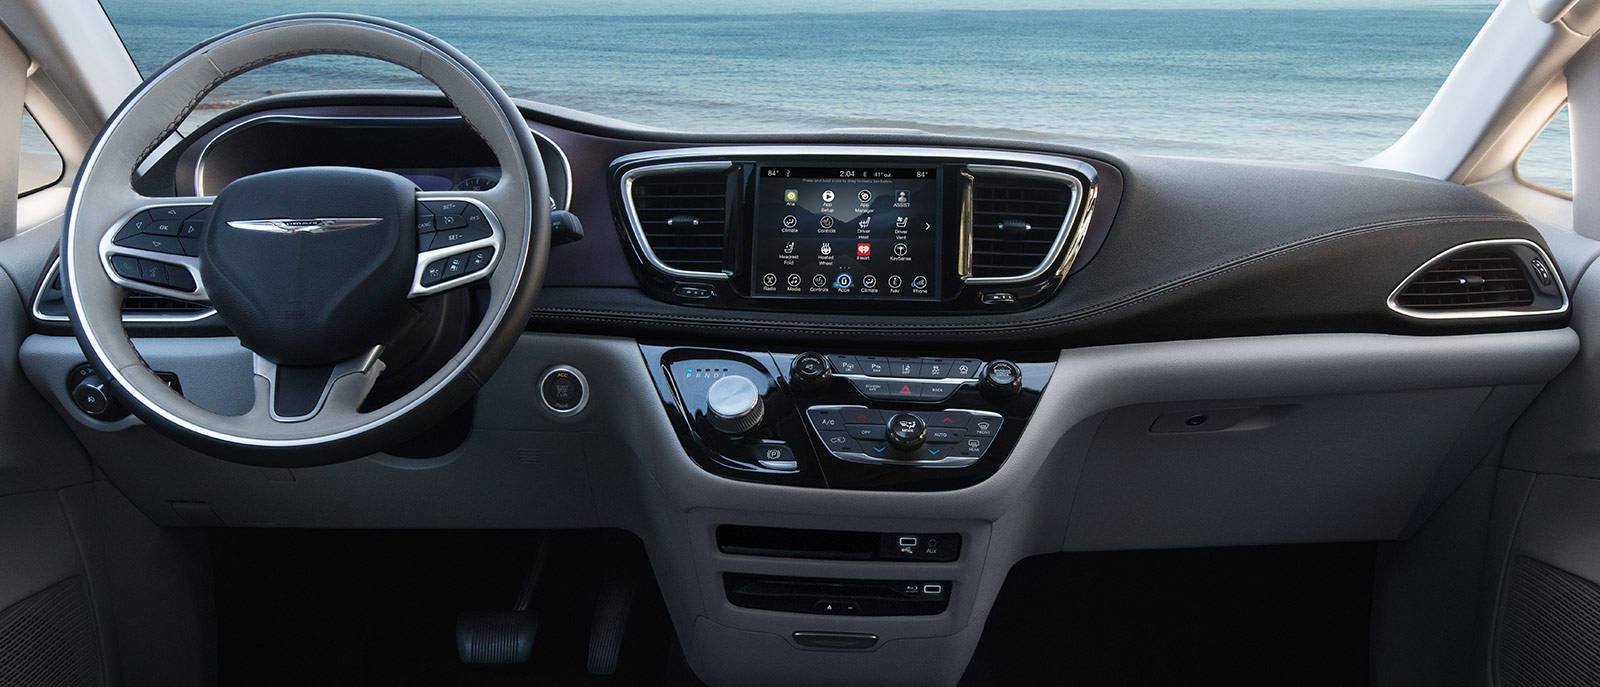 2017 Pacifica Touring Interior